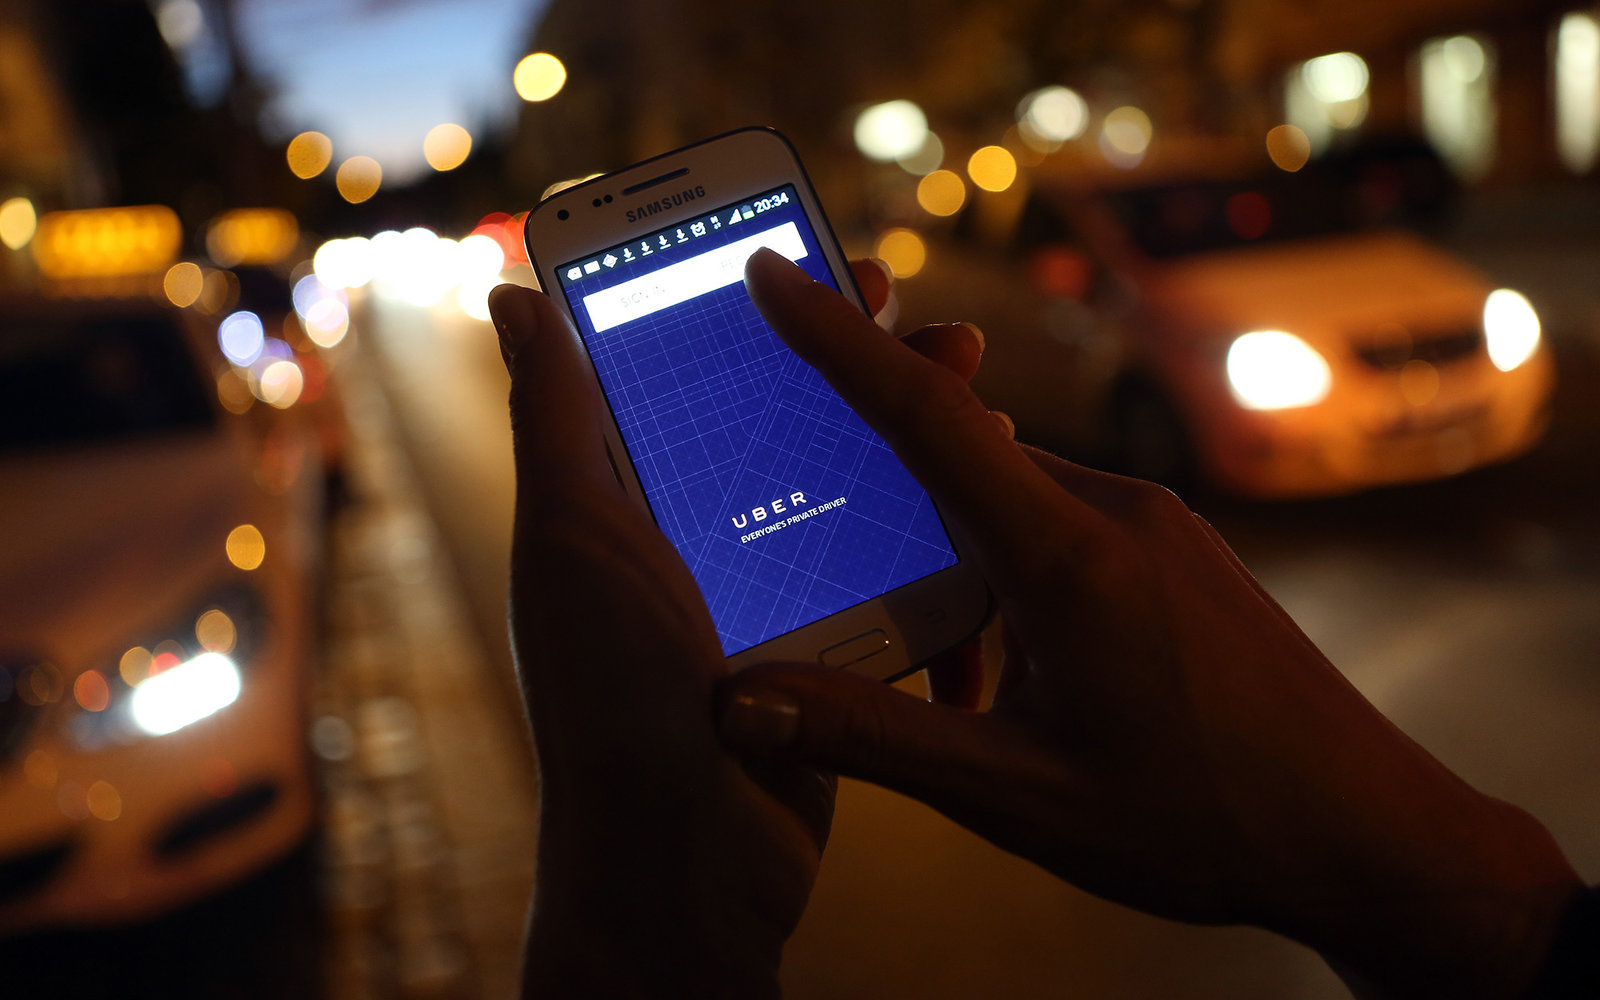 BERLIN, GERMANY - SEPTEMBER 02:  In this photo illustration, a woman uses the Uber app on an Samsung smartphone on September 2, 2014 in Berlin, Germany. Uber, an app that allows passenger to buy rides from drivers who do not have taxi permits, has had its